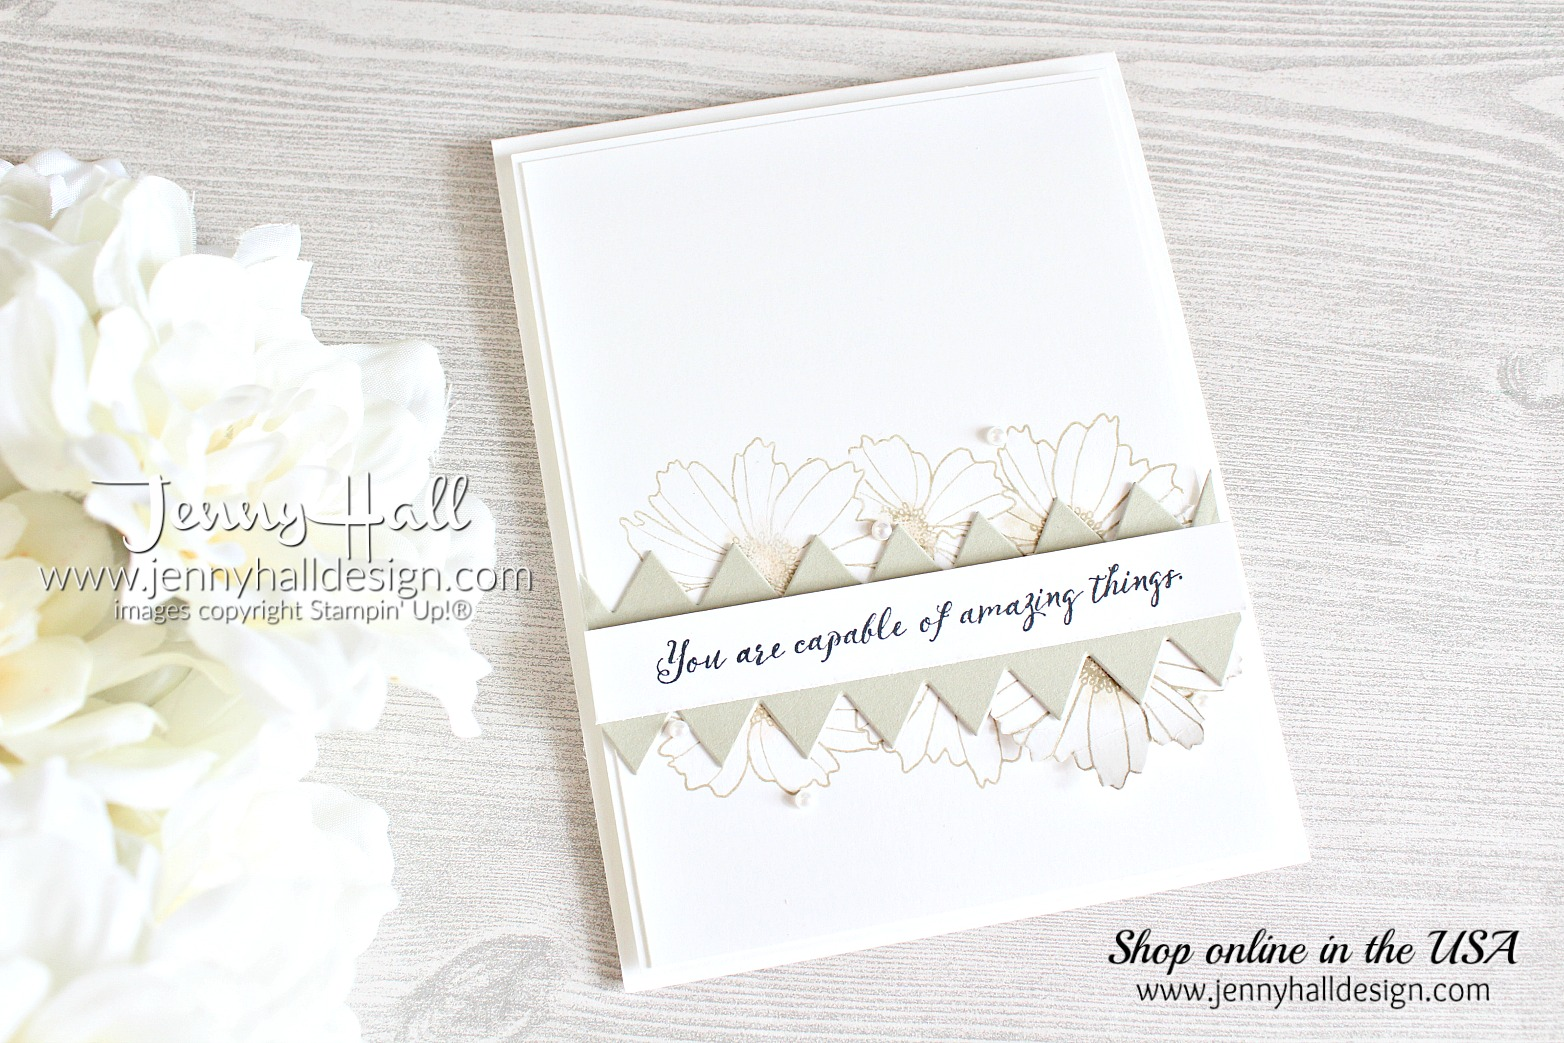 Cardmaking with paper scraps card created by Jenny Hall at www.jennyhalldesign.com for #cardmaking #cardmaker #betterwithyou #playfulpennantsframelits #jennyhall #jennyhalldesign #jennystampsup #cascards #cleanandsimplecards #stampinkpaperchallenge #papercraft #crafts #artsandcrafts